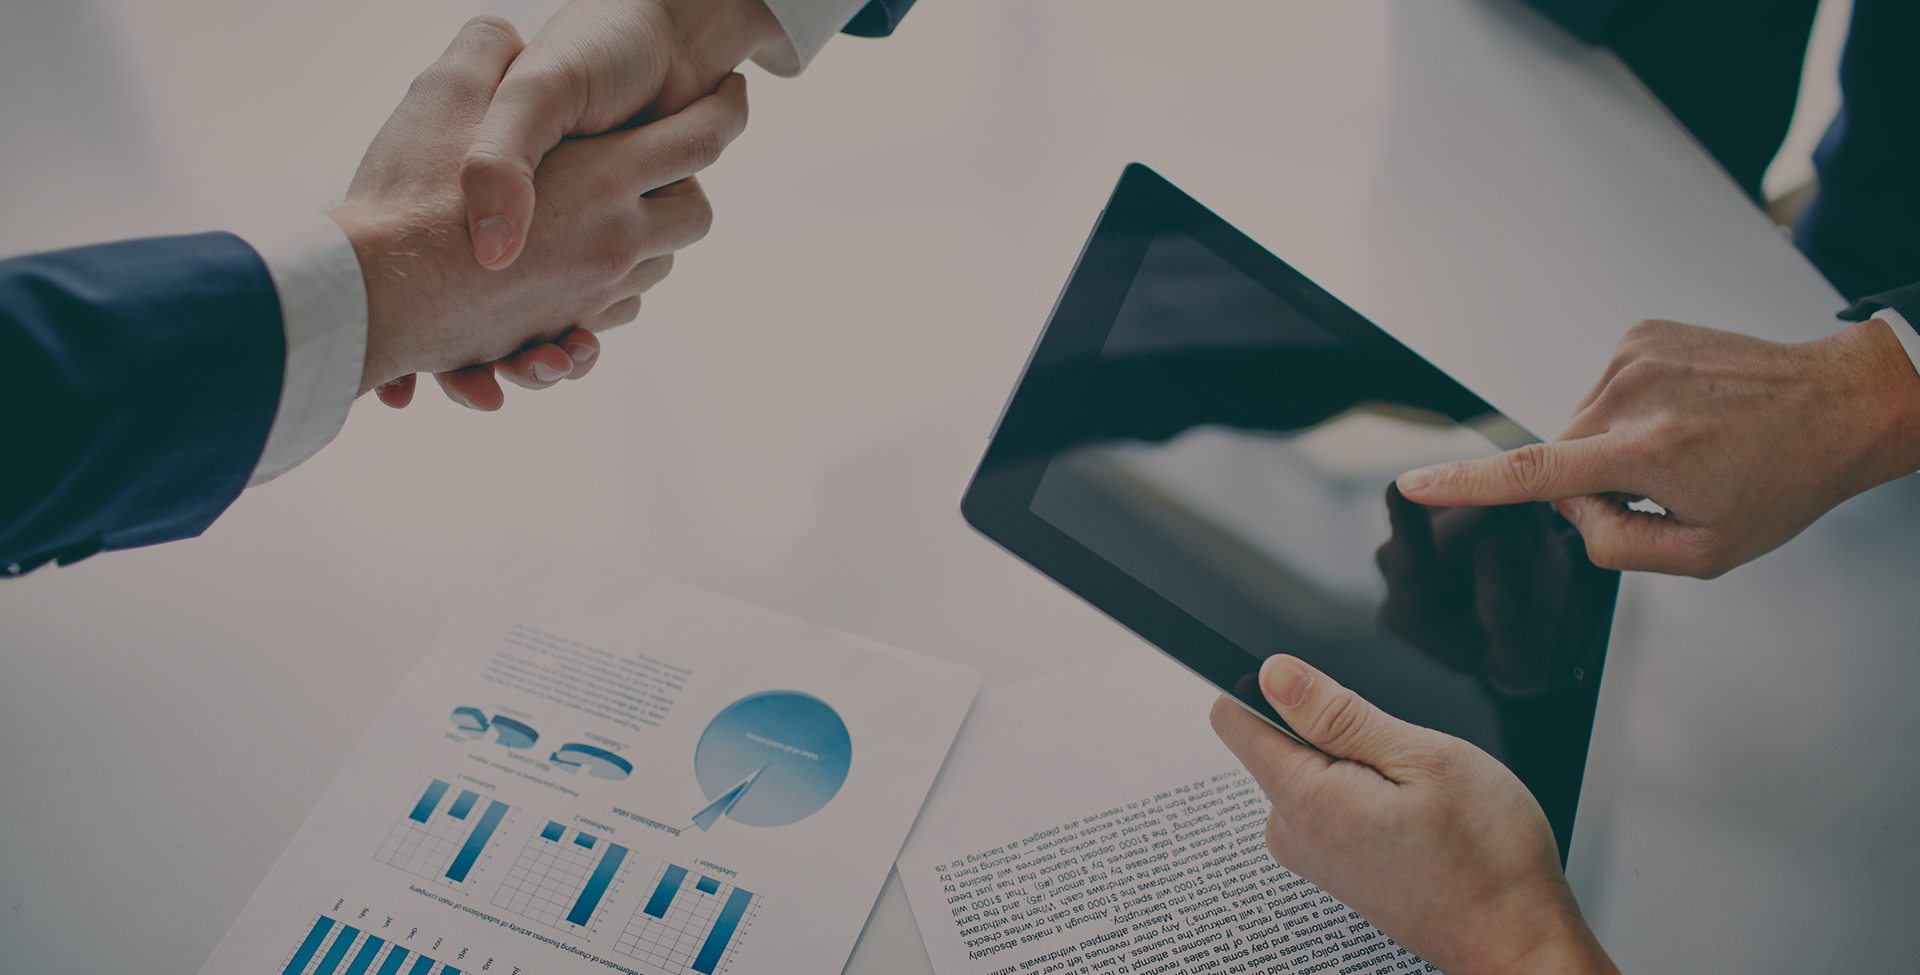 Tools techniques and processes